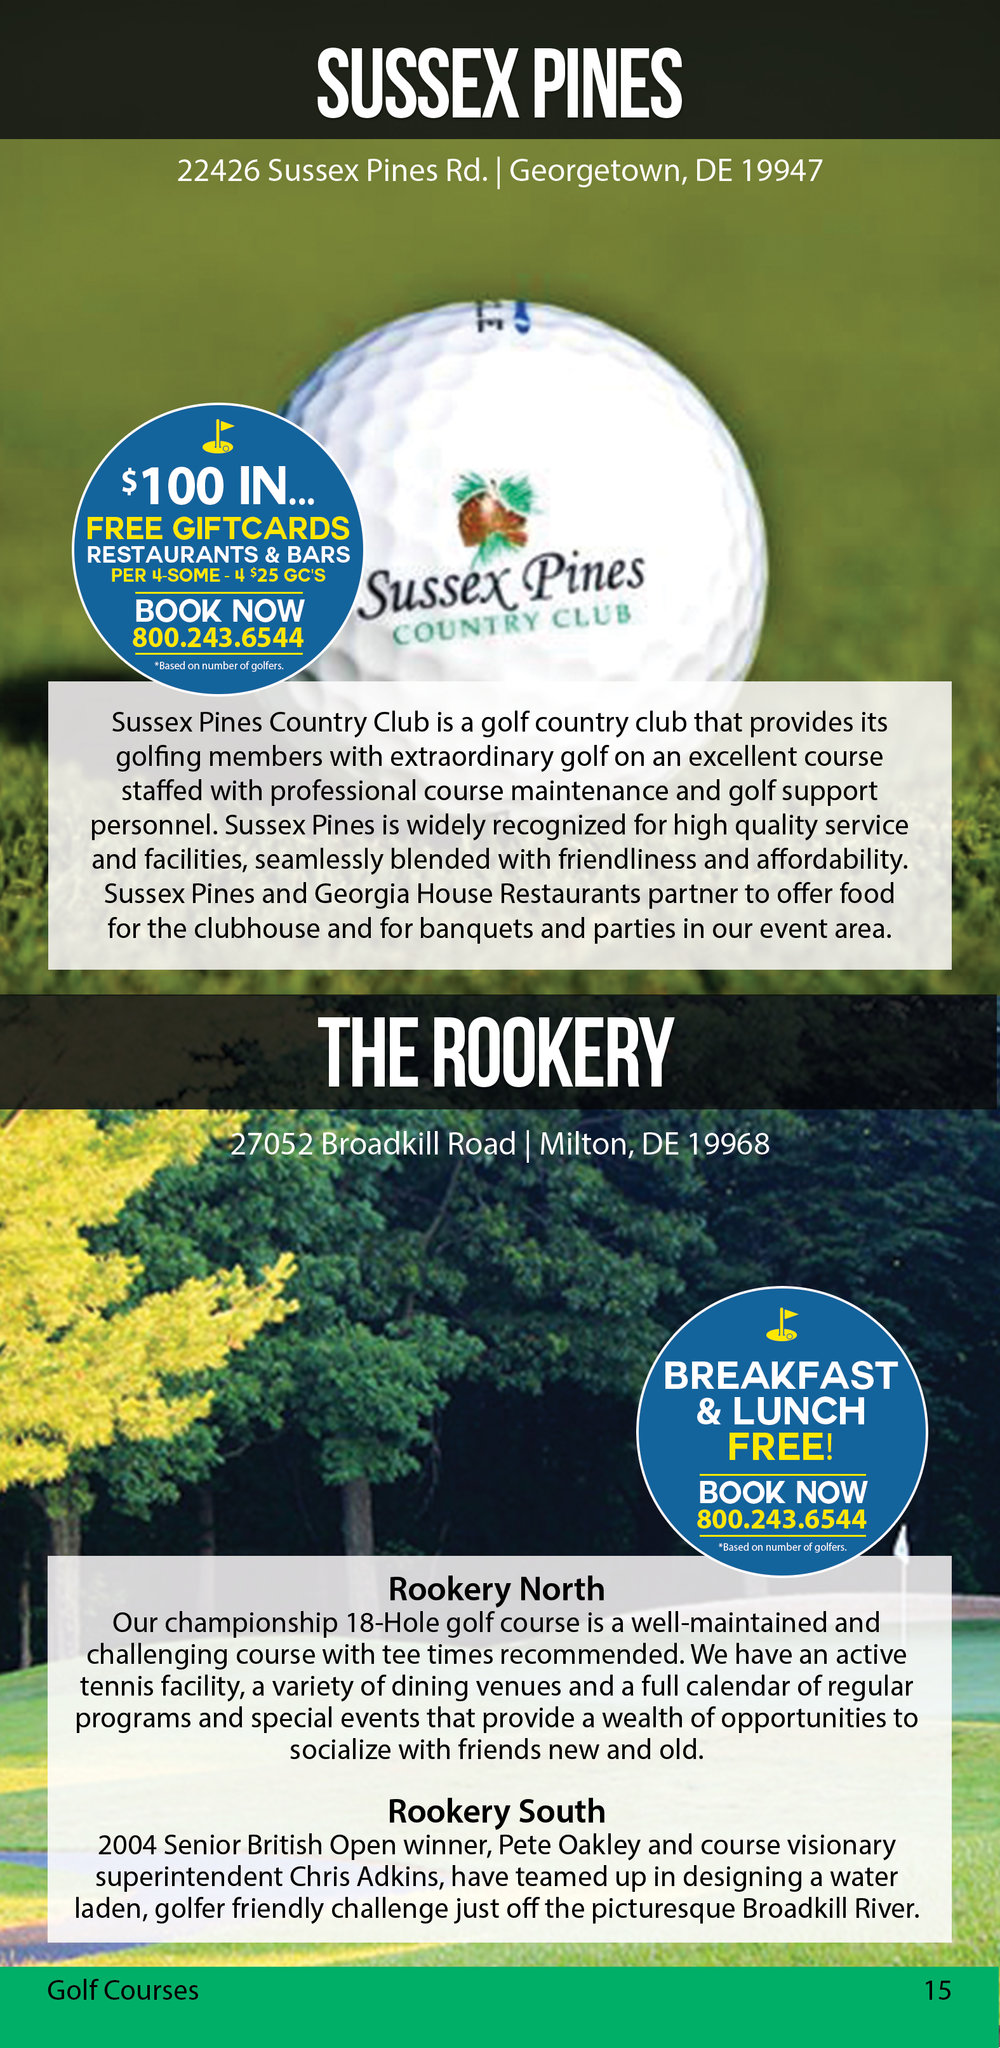 Page-15-Sussex-Pines-&-The-Rockery.jpg